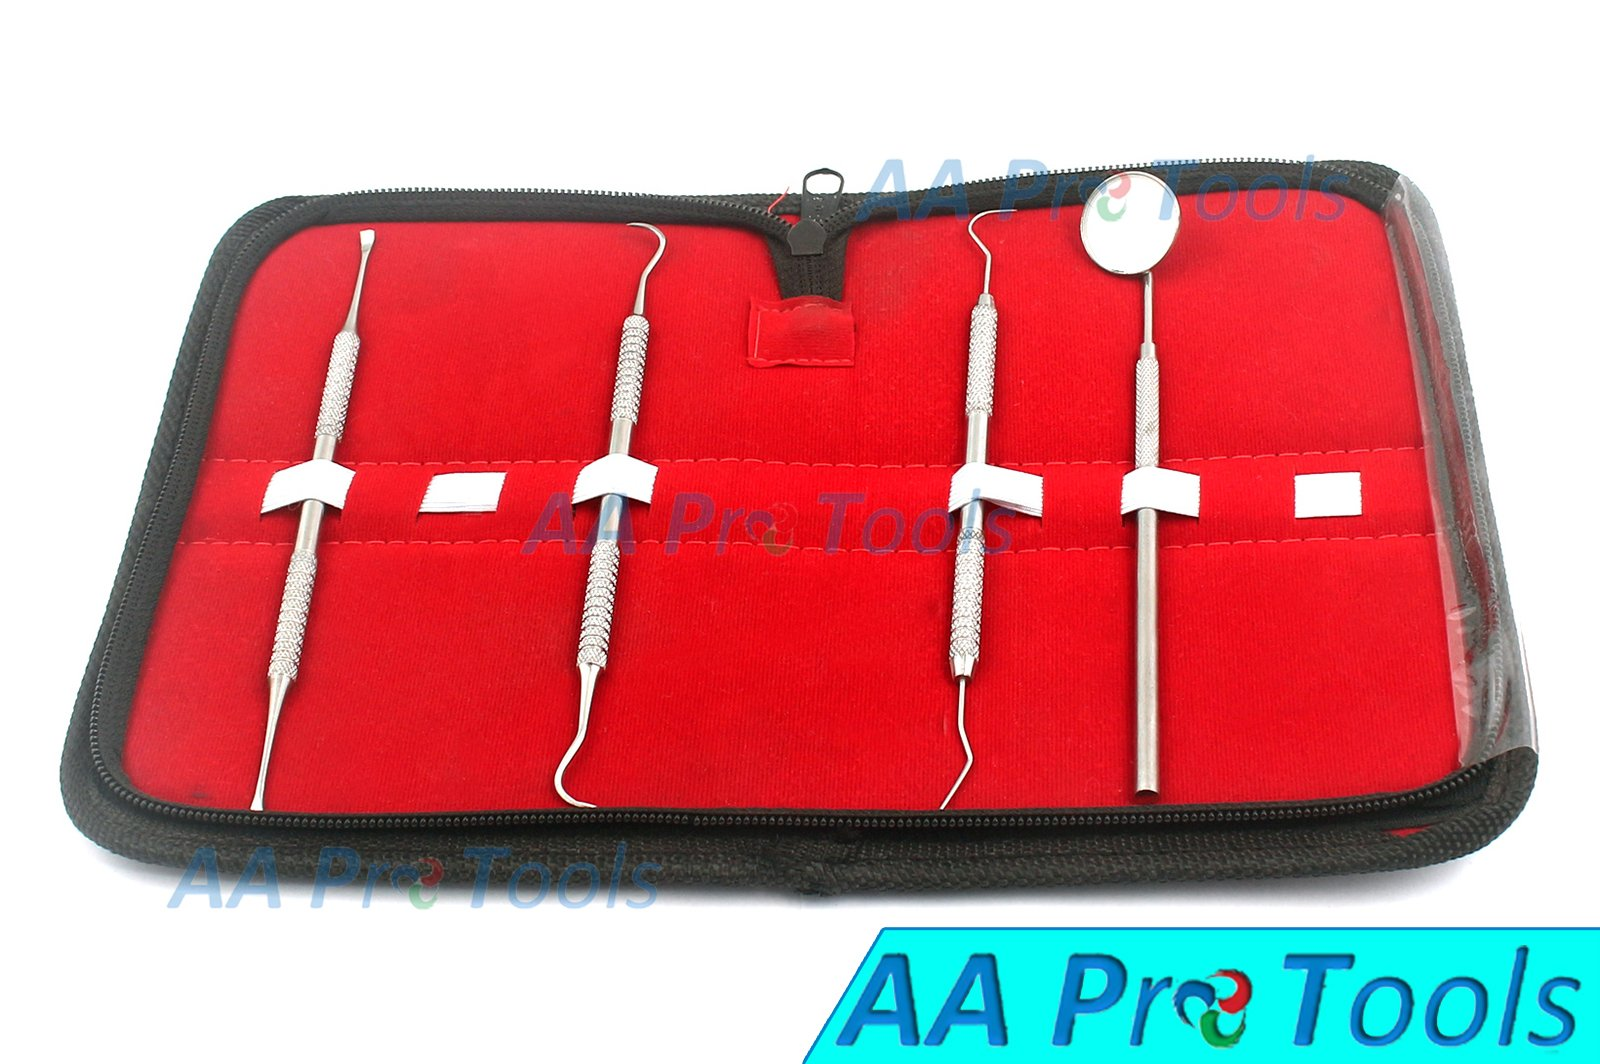 AA PRO PROFESSIONAL STAINLESS STEEL DENTAL TOOL KIT INCLUDES DENTIST INSTRUMENTS IN PROTECTIVE LEATHER CASE - MULTI-PURPOSE TOOLS A+ QUALITY